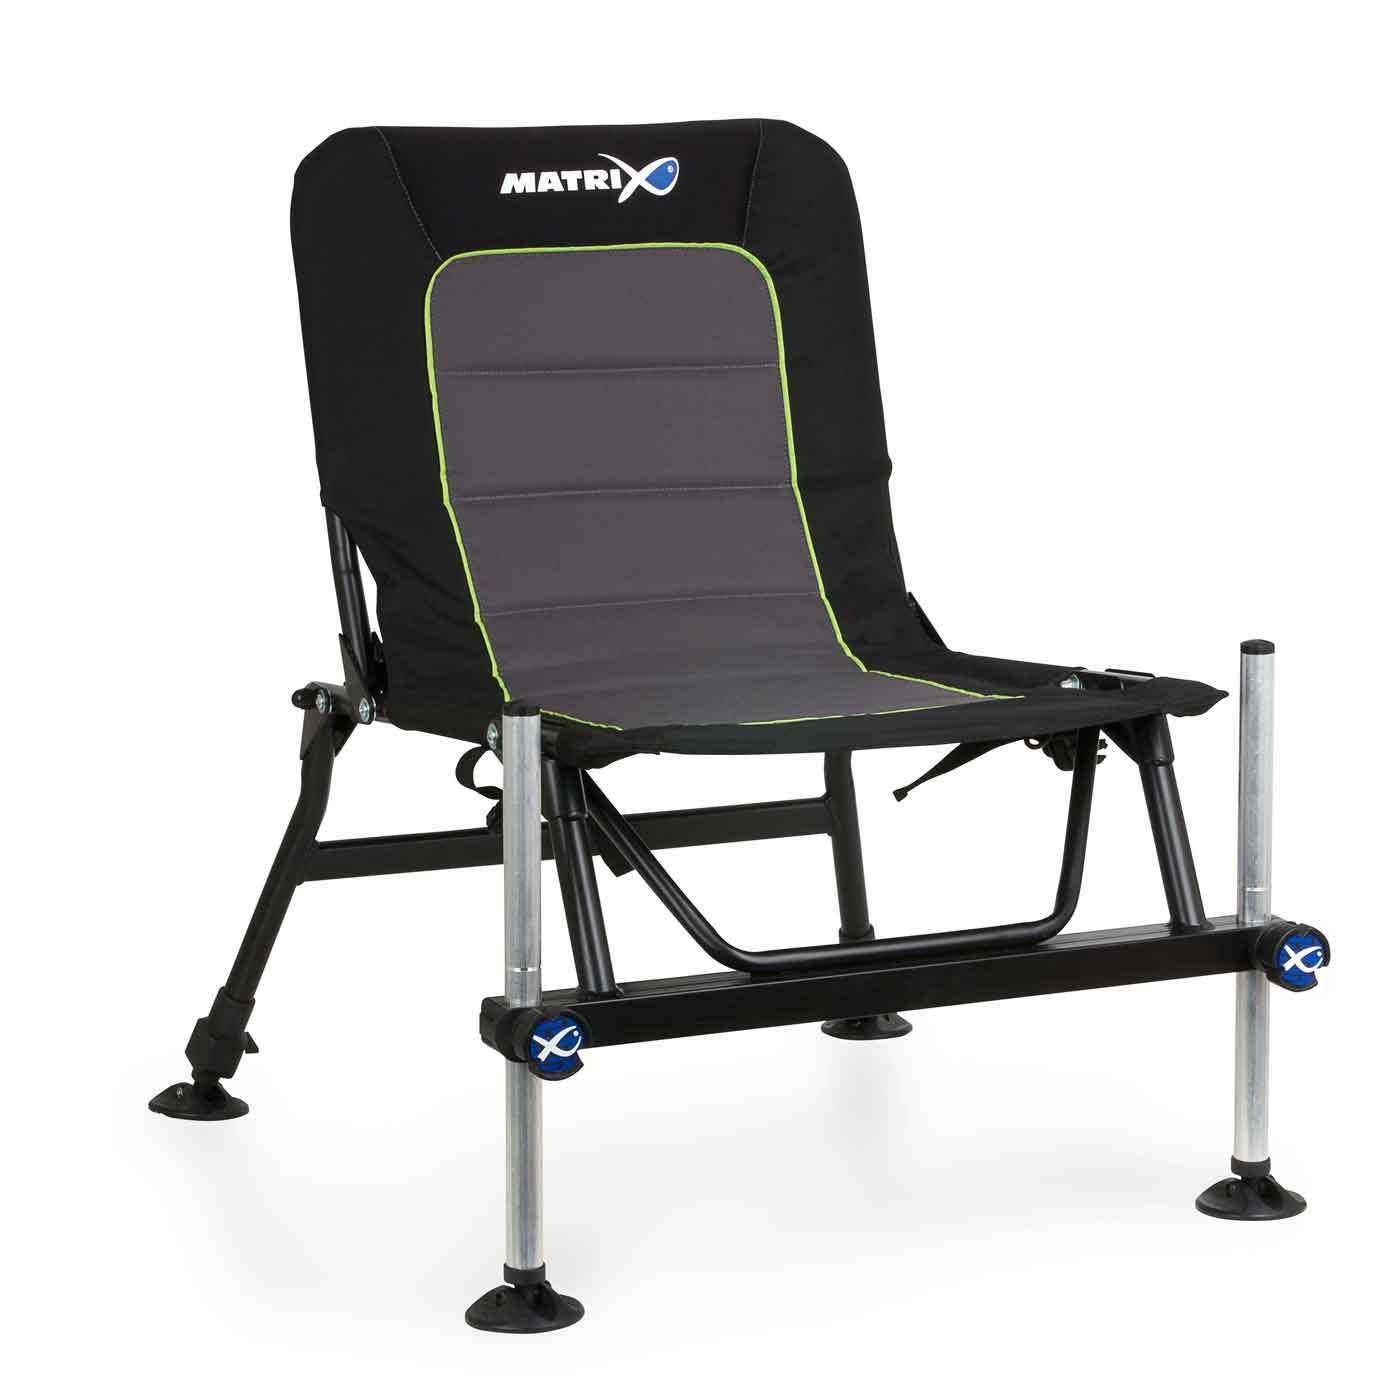 Matrix Ethos Pro Accessory Chair Brand New 2017 - Free Delivery